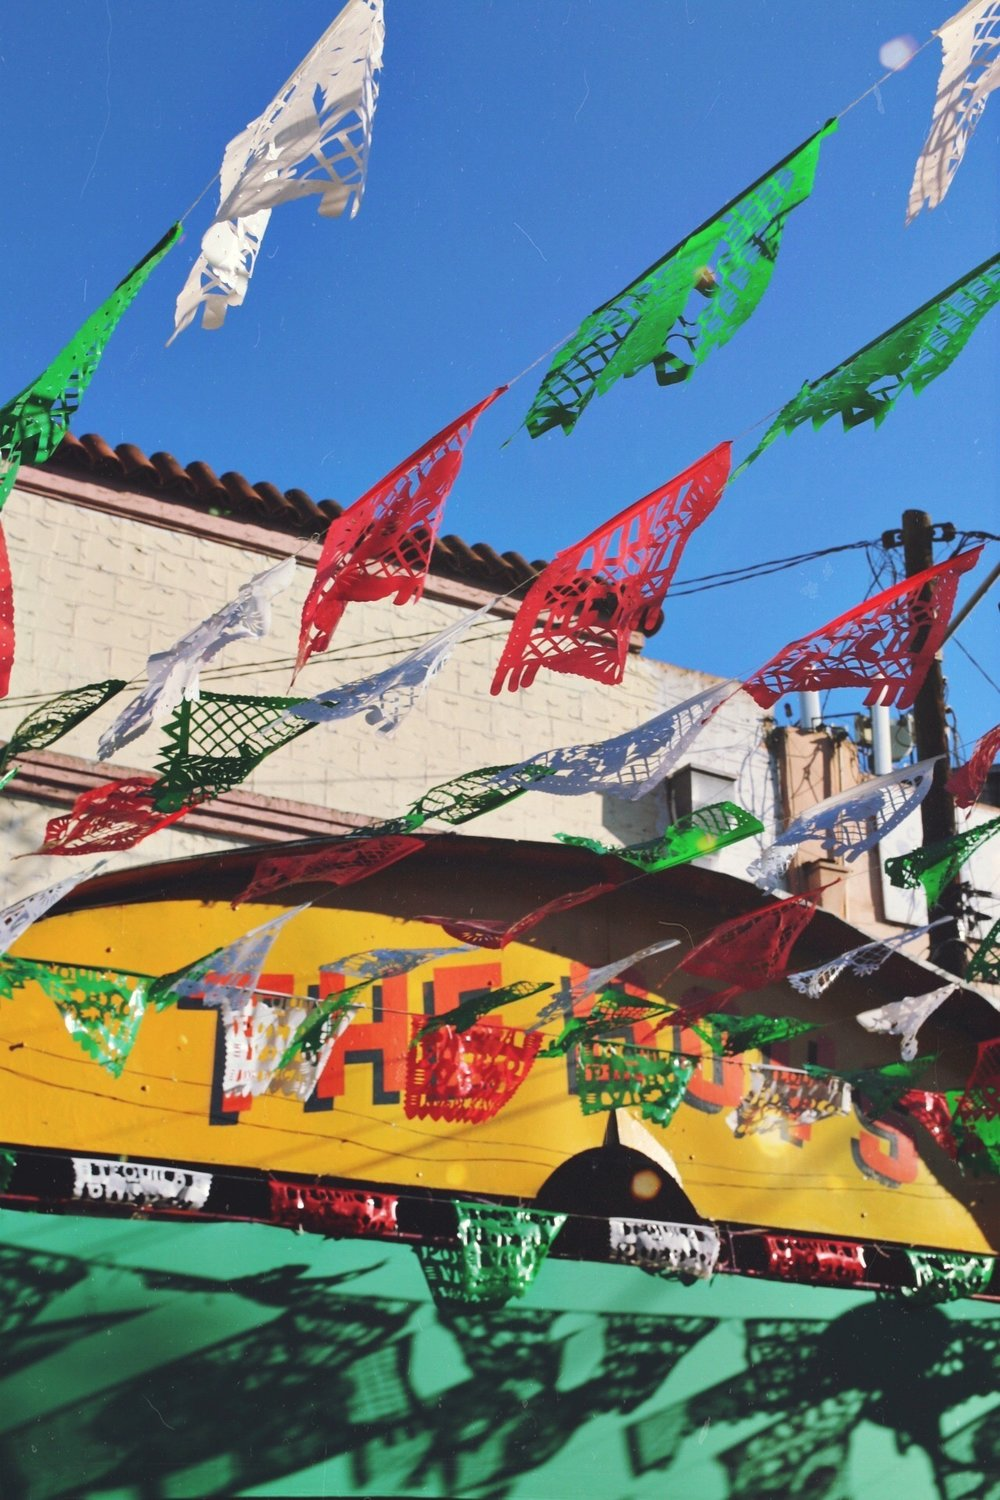 Tijuana, Mexico - A Daytrip to Foodie Paradise